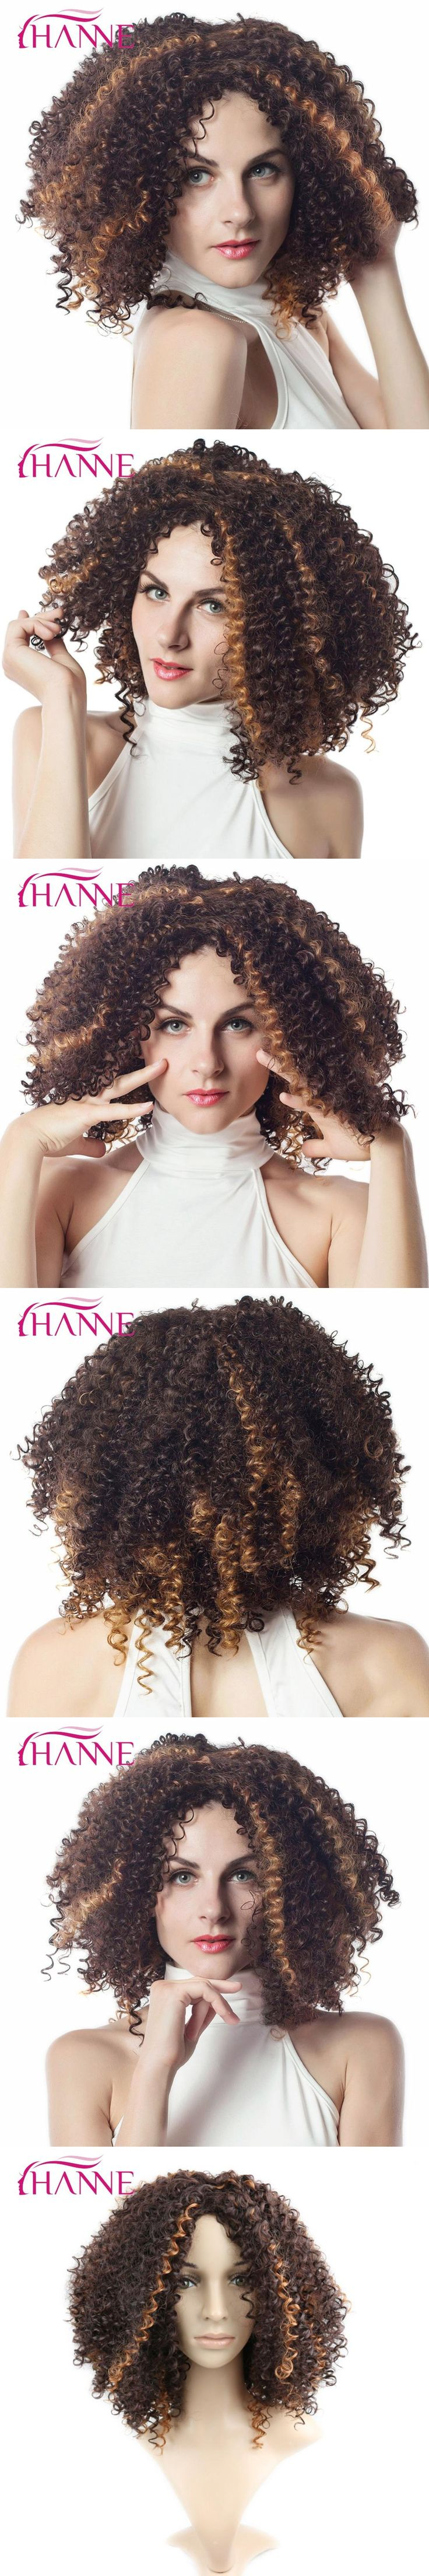 HANNE Medium Length Kinky Curly Mix Brown And Blonde Hign Temperature Synthetic Fiber Wigs for Black Women African American Wig